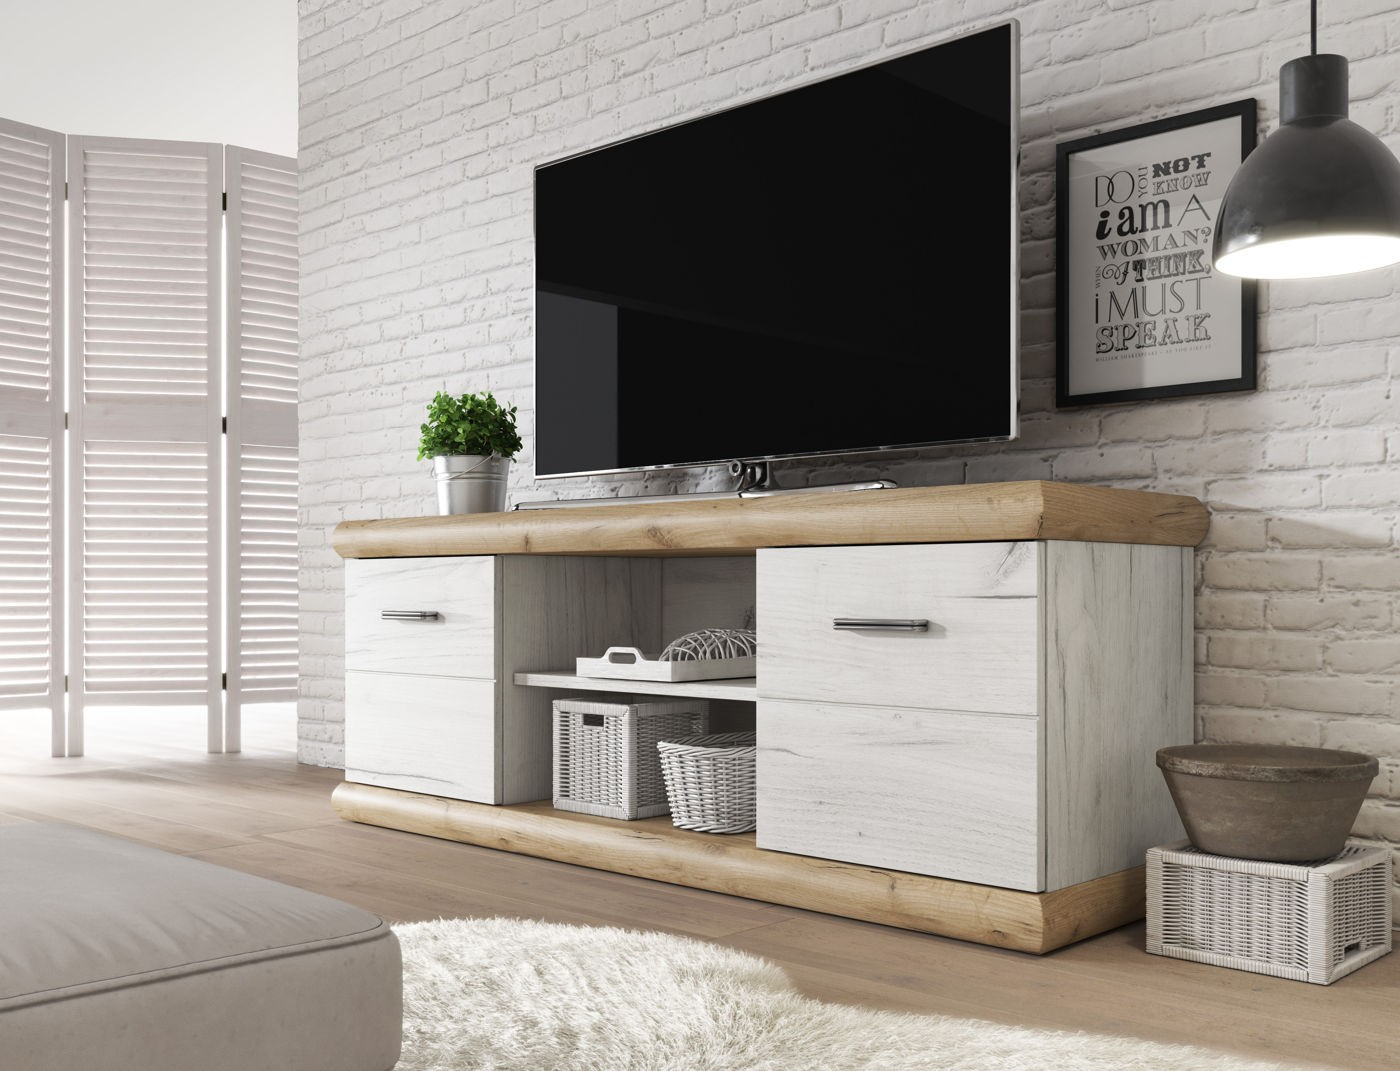 Tv meubel crown wit licht eiken 157 cm meubella for Showroommodellen design meubels